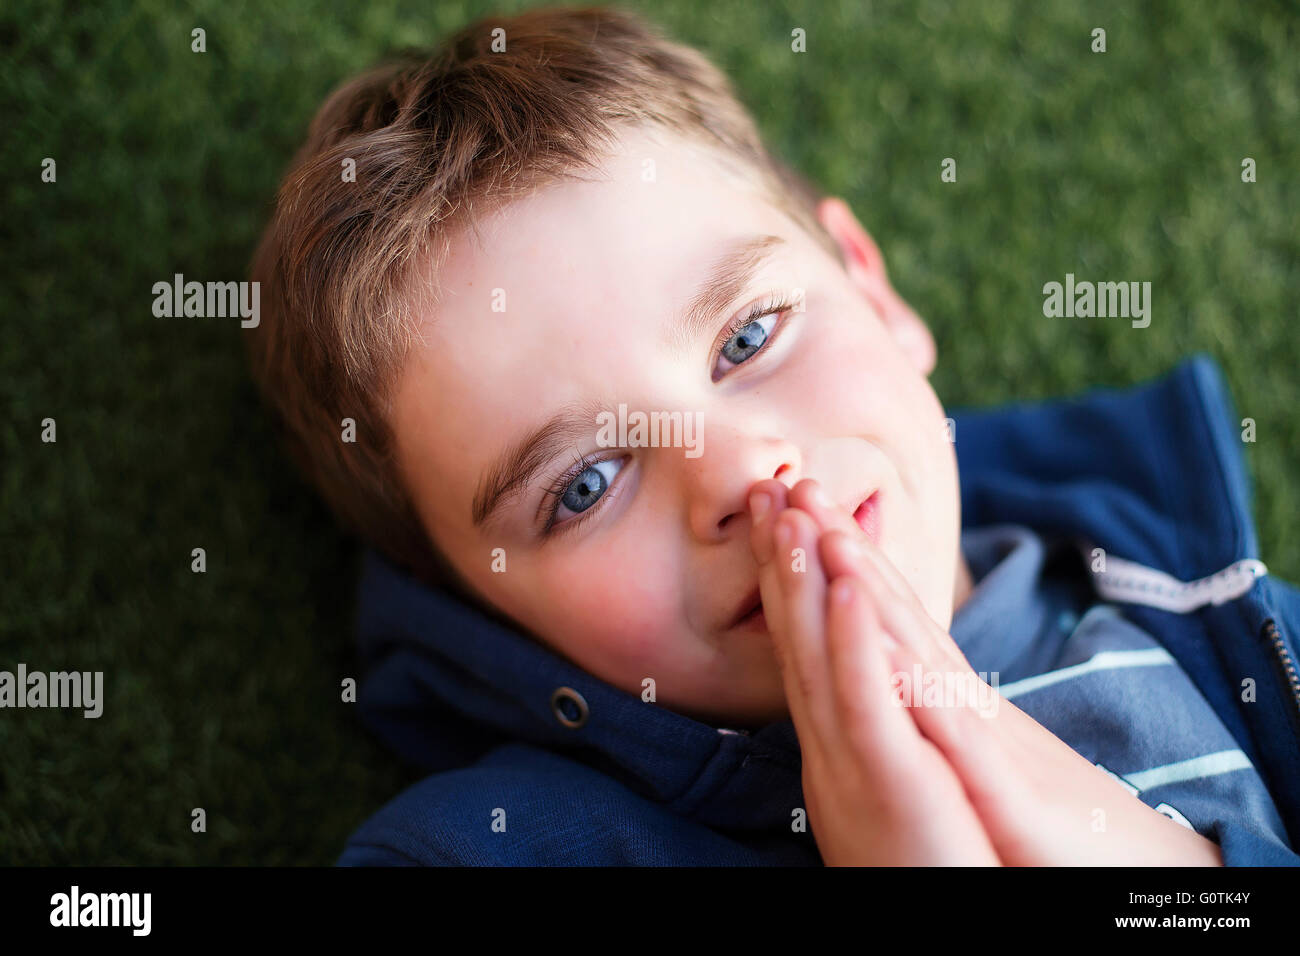 Overhead view of a boy praying - Stock Image